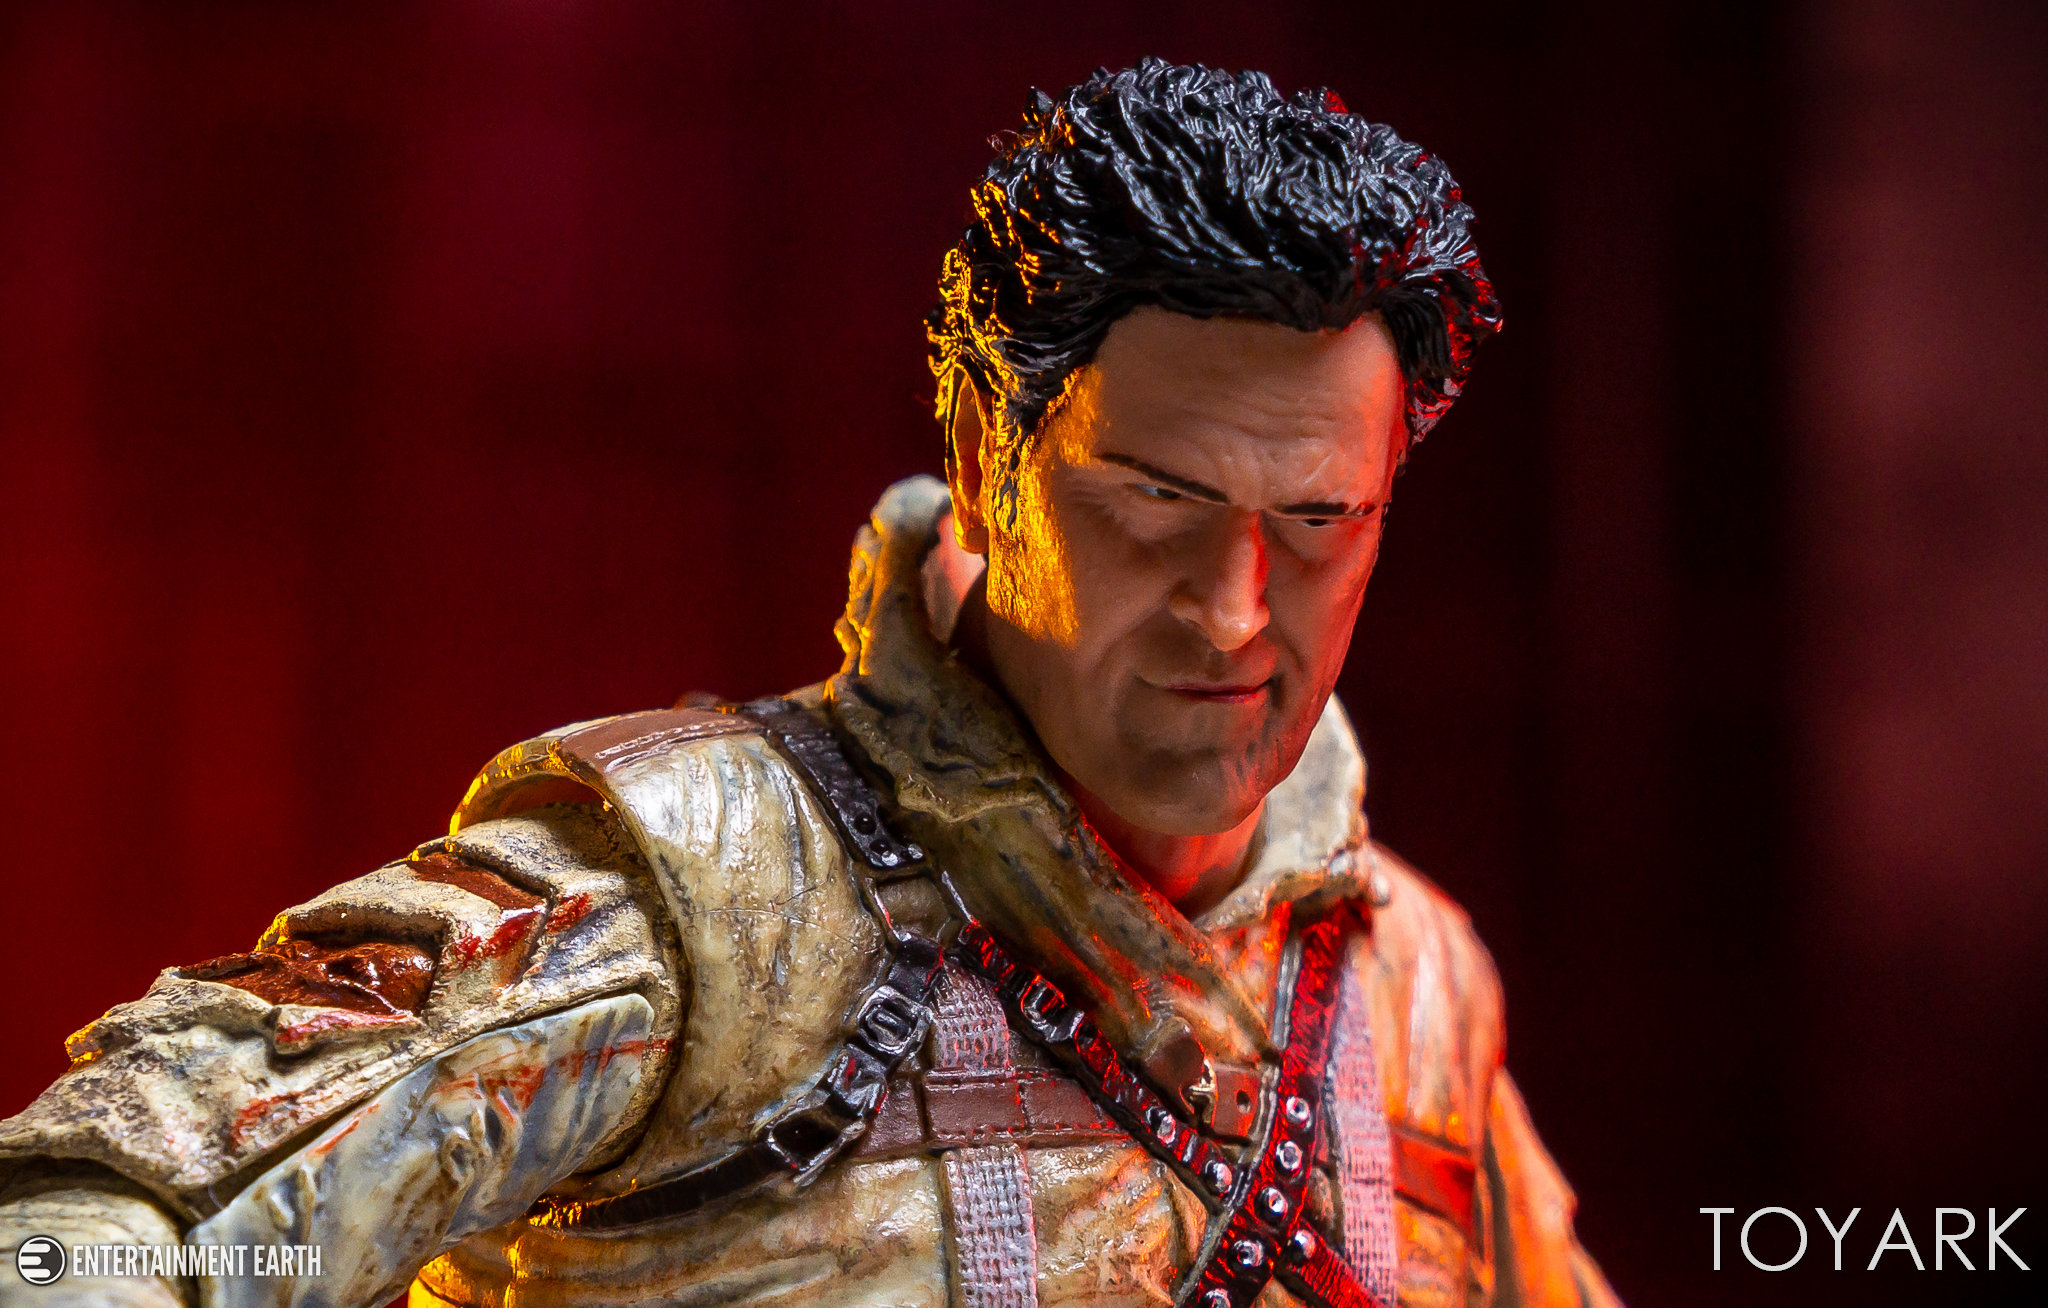 http://news.toyark.com/wp-content/uploads/sites/4/2018/04/Ash-vs-Evil-Dead-Series-2-NECA-040.jpg